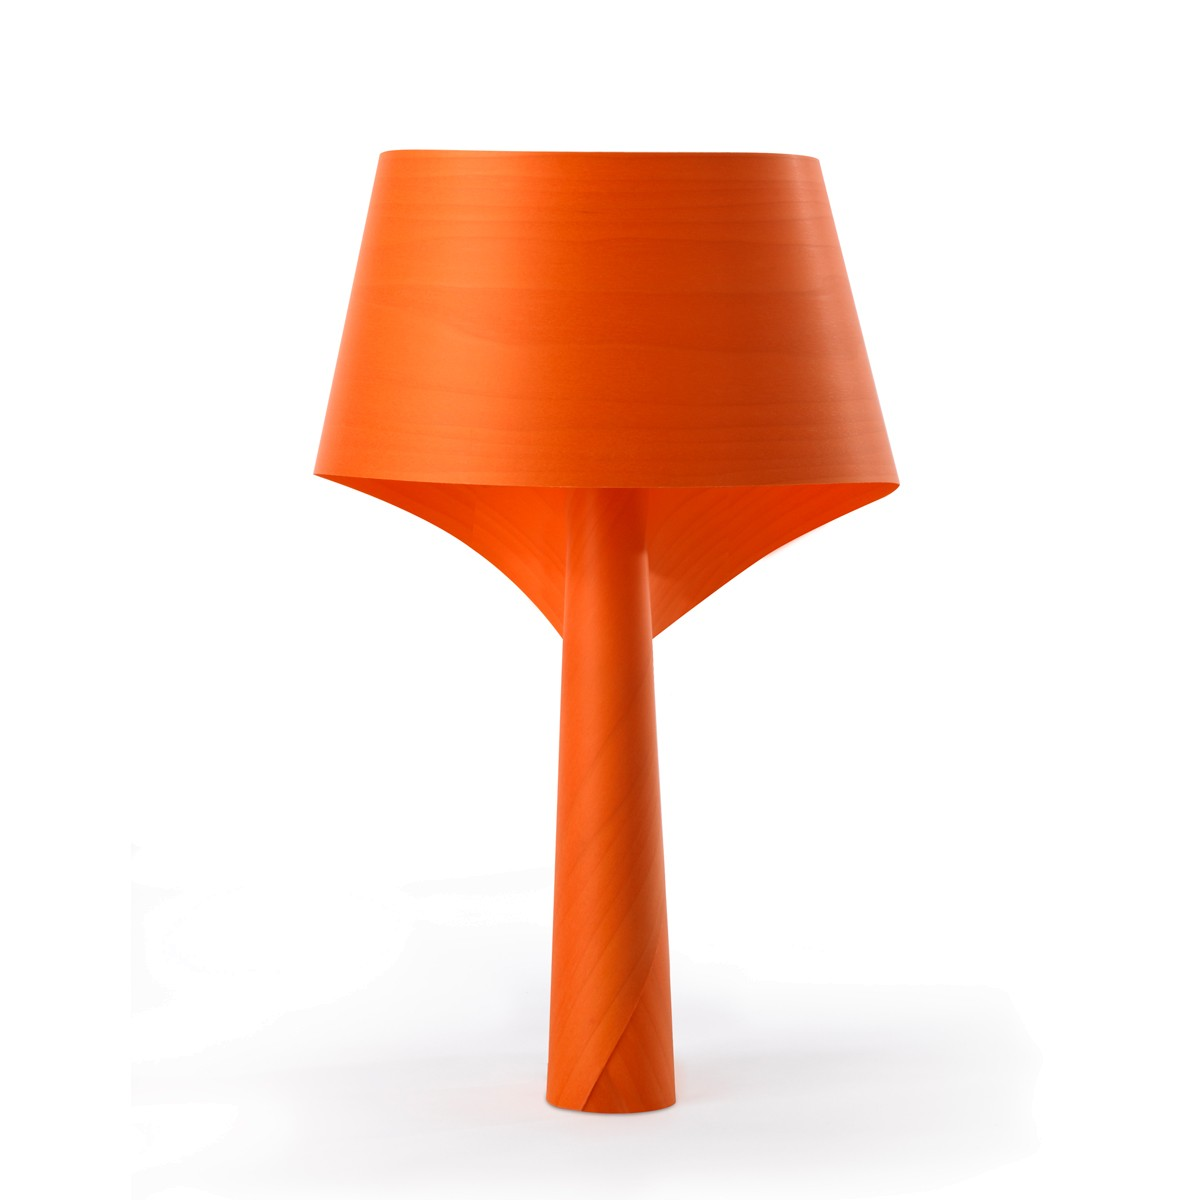 LZF Lamps Air Tischleuchte, orange